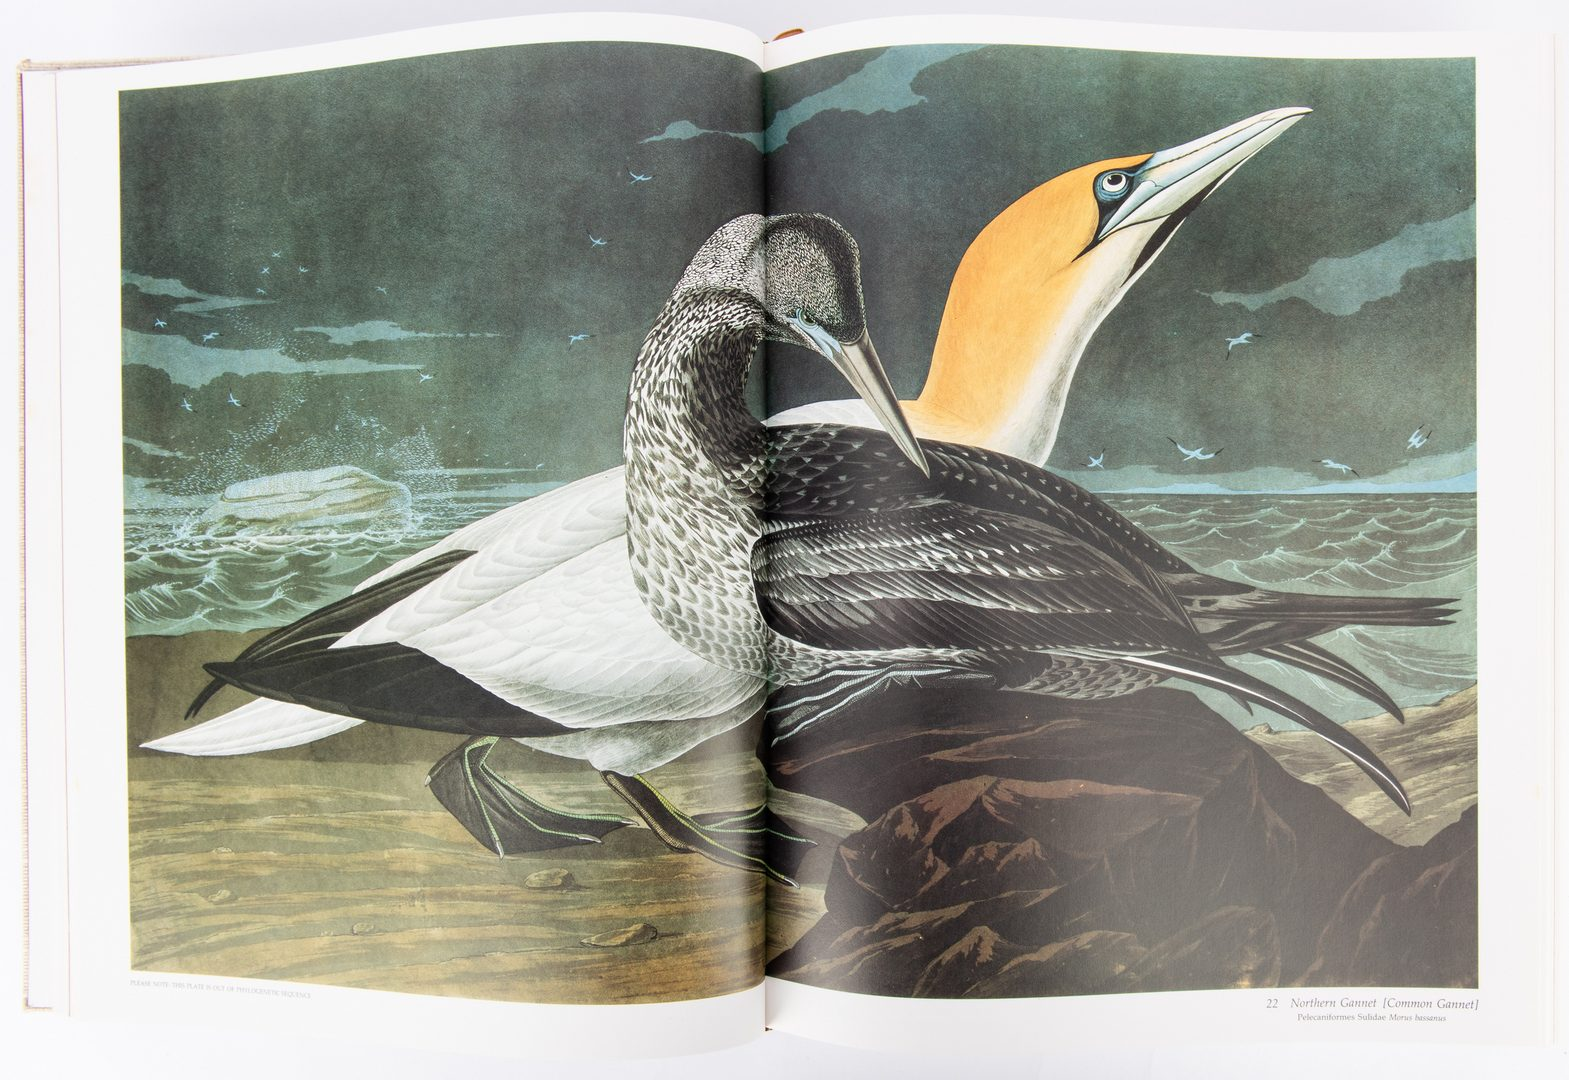 Lot 99: R. T. Peterson, Audubon's Birds of America, 1981